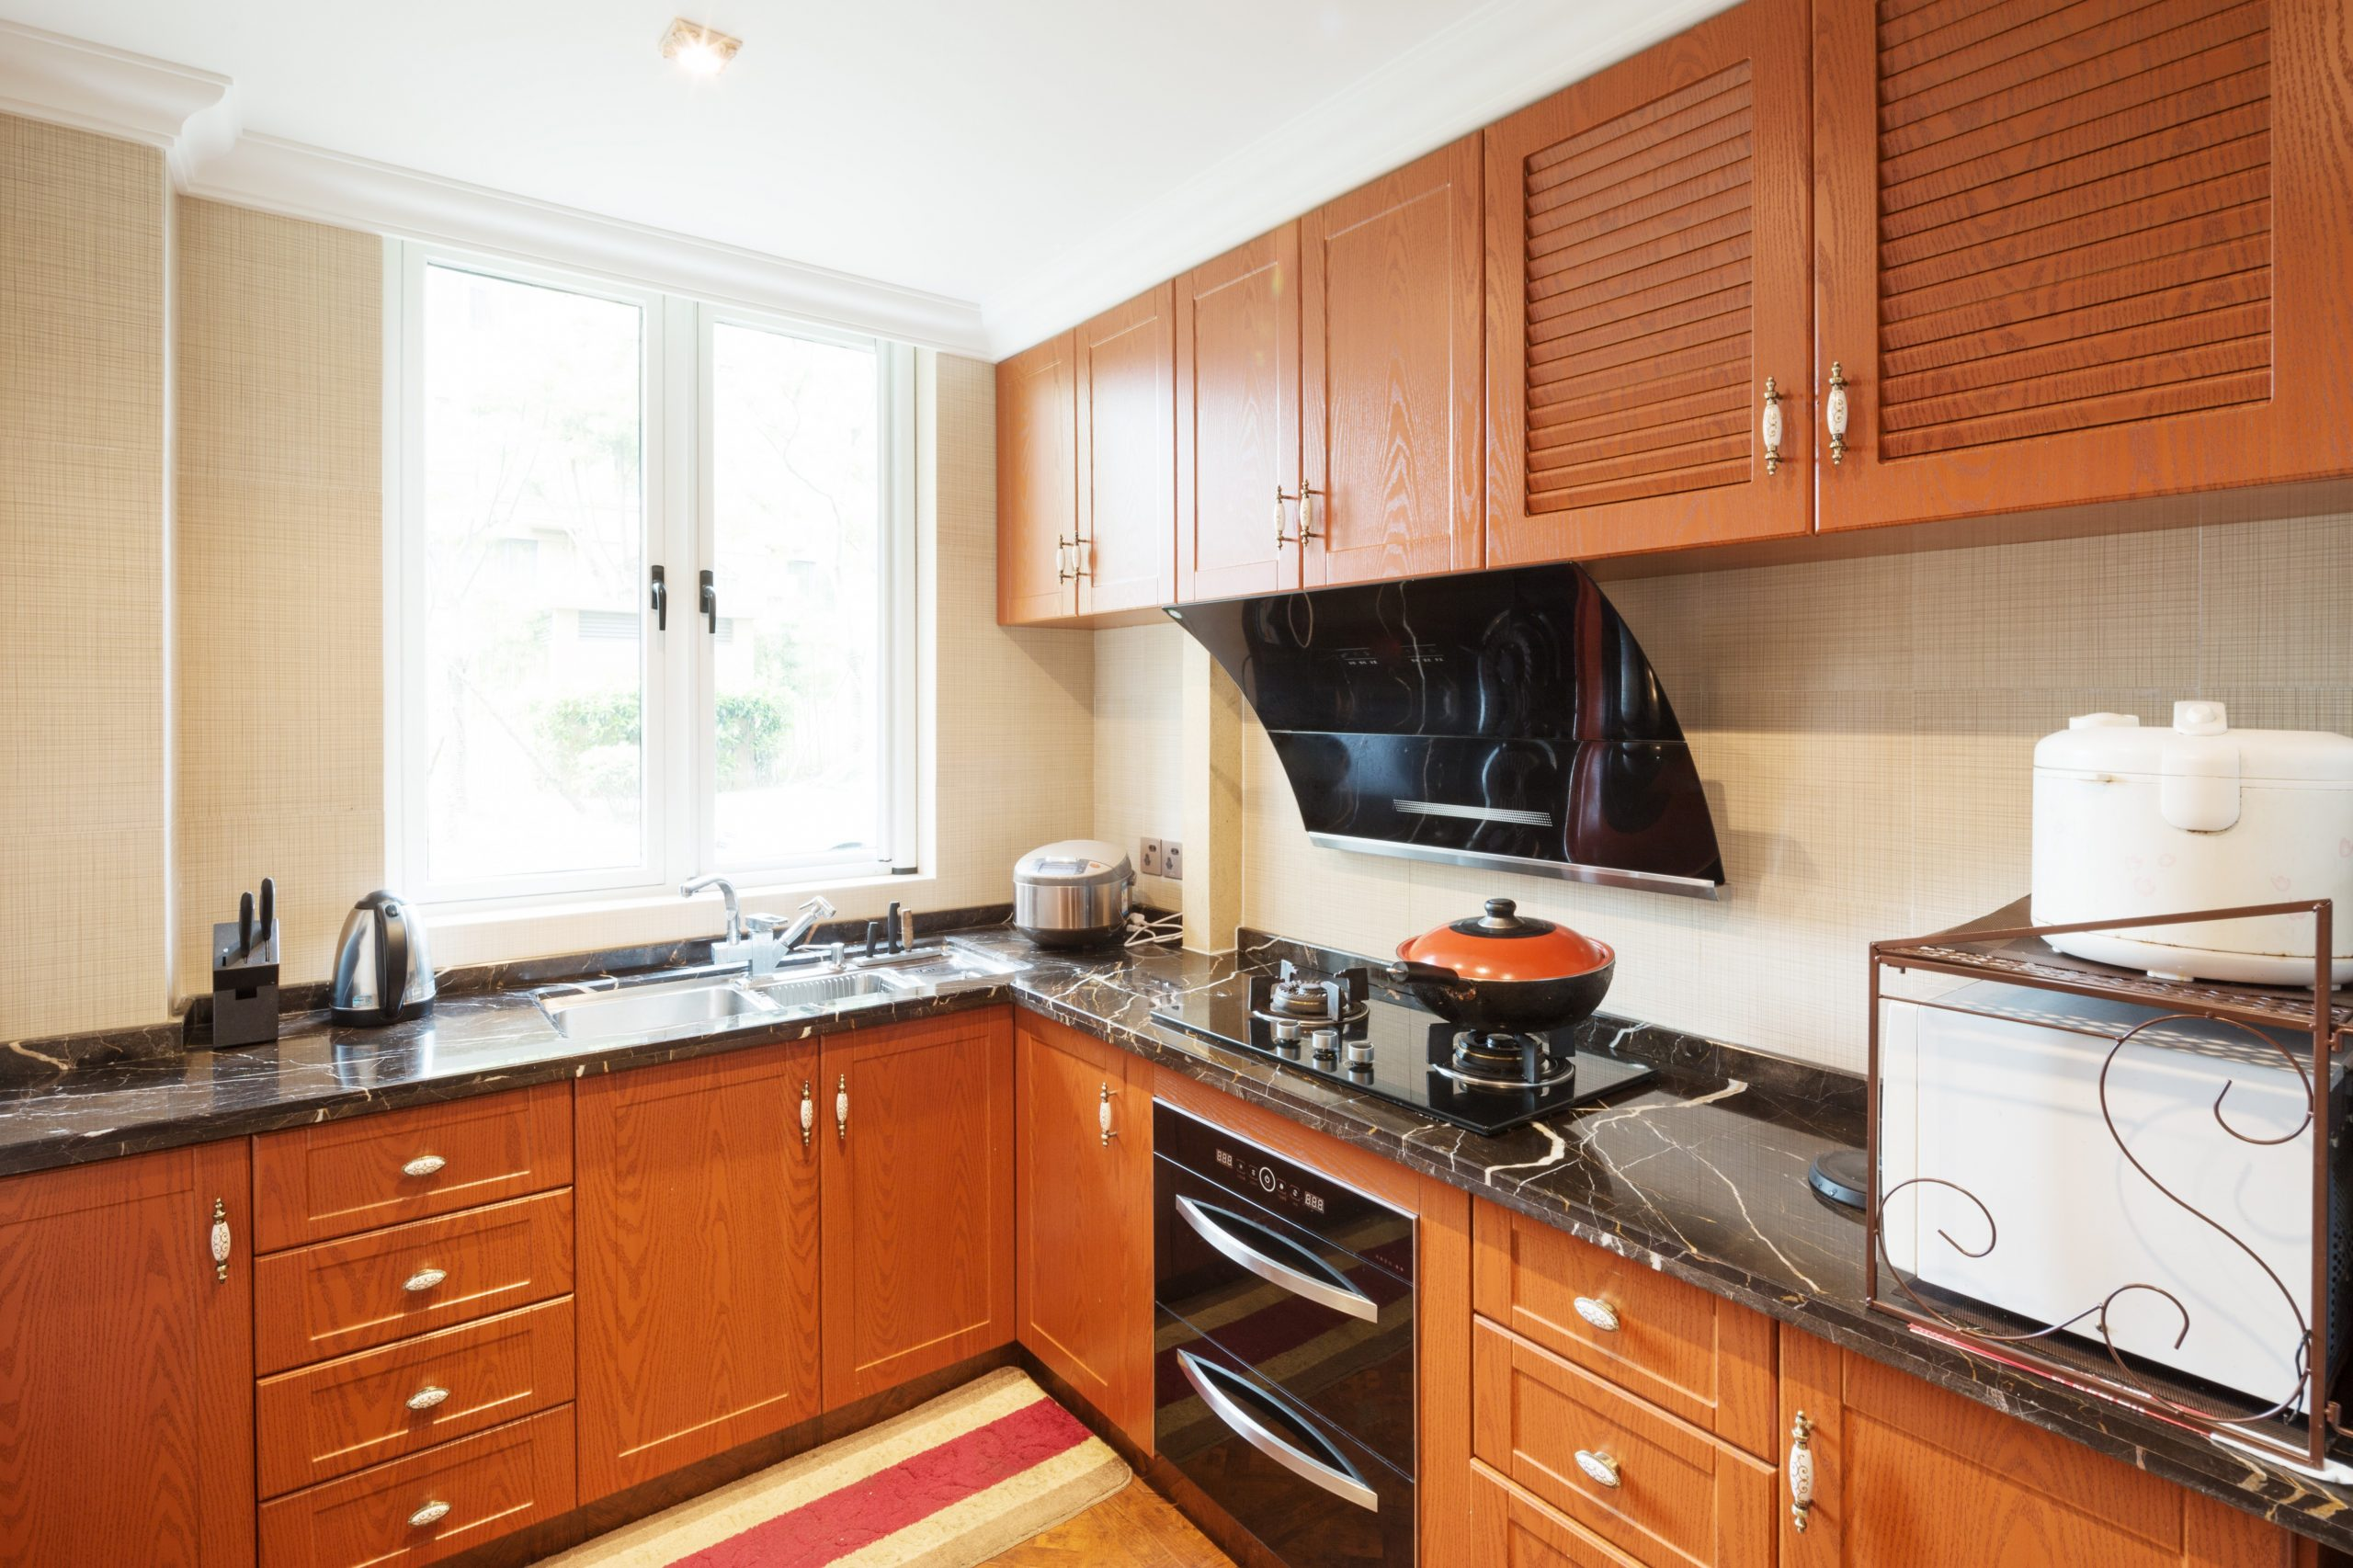 How to Redo a Fake Wood Cabinet Surface  Home Guides  SF Gate - Pressed Wood Kitchen Cabinets